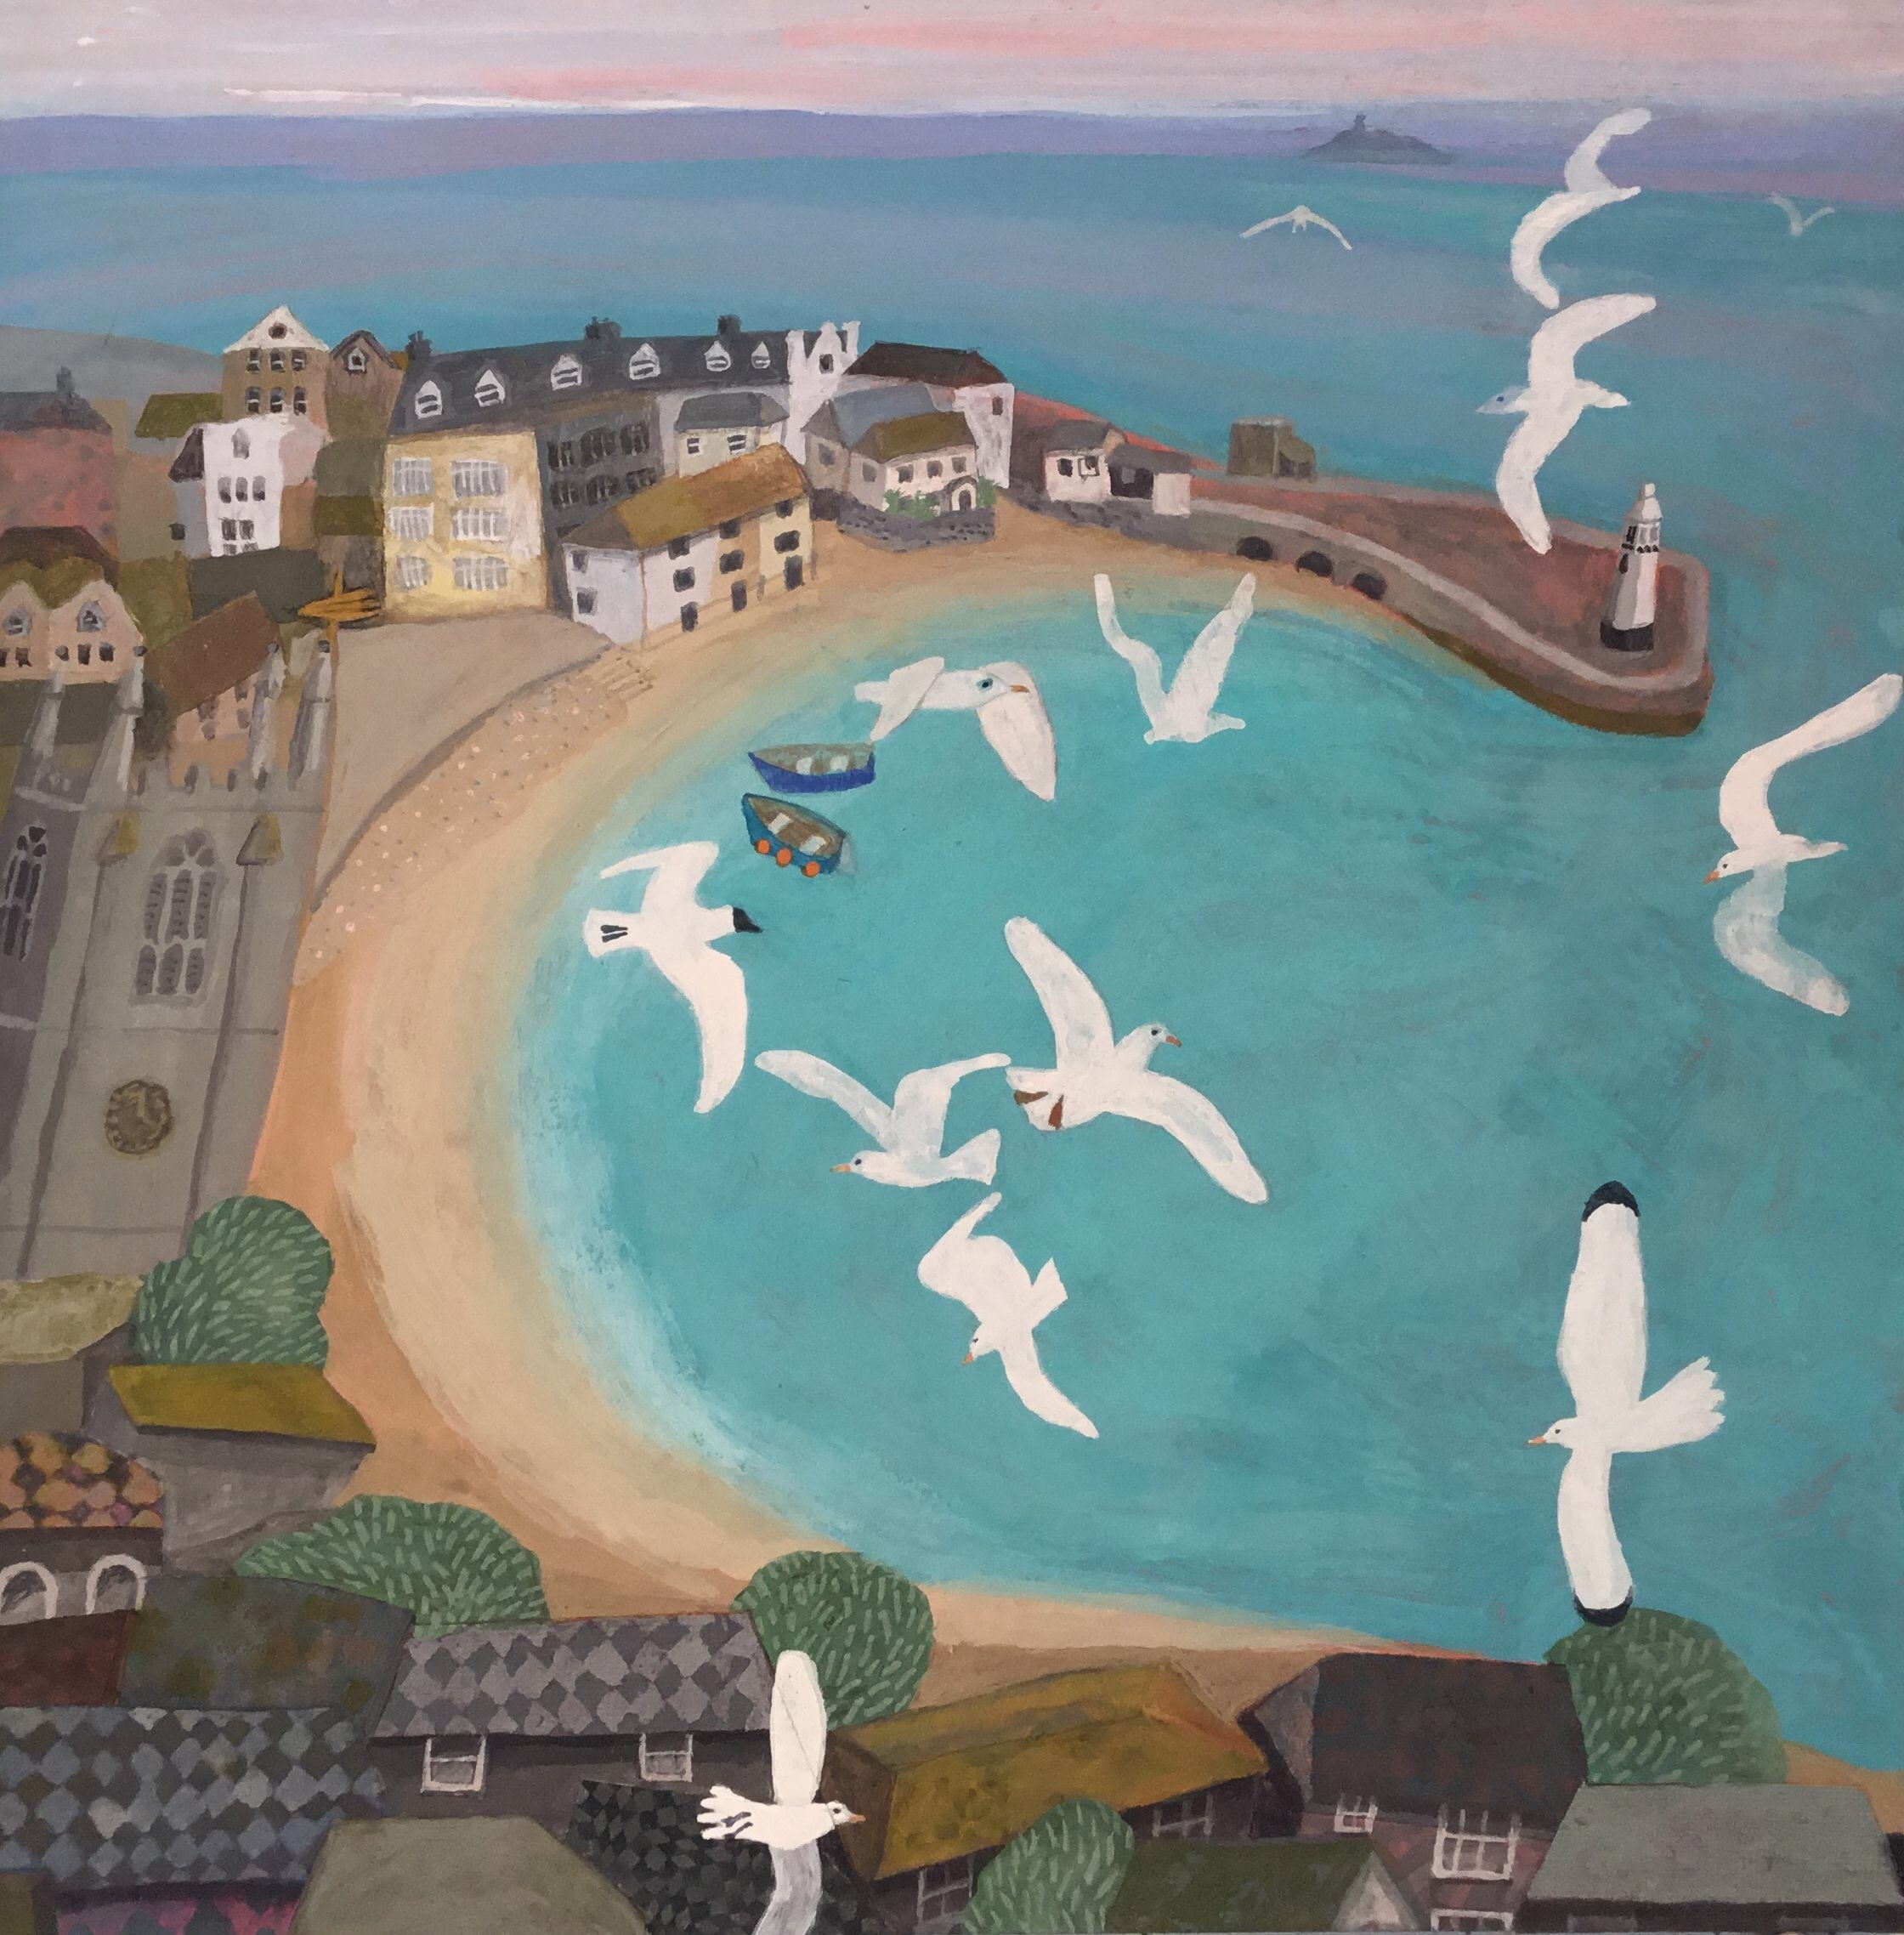 """<span class=""""link fancybox-details-link""""><a href=""""/artists/146-gertie-young/works/11672-gertie-young-morning-in-st-ives/"""">View Detail Page</a></span><div class=""""artist""""><span class=""""artist""""><strong>Gertie Young</strong></span></div><div class=""""title""""><em>Morning in St Ives</em></div><div class=""""medium"""">watercolour, gouache & collage</div><div class=""""dimensions"""">Artwork: 30 x 30 cm<br /> Frame: 42 x 42 cm<br /> <br /> </div><div class=""""price"""">£380.00</div>"""